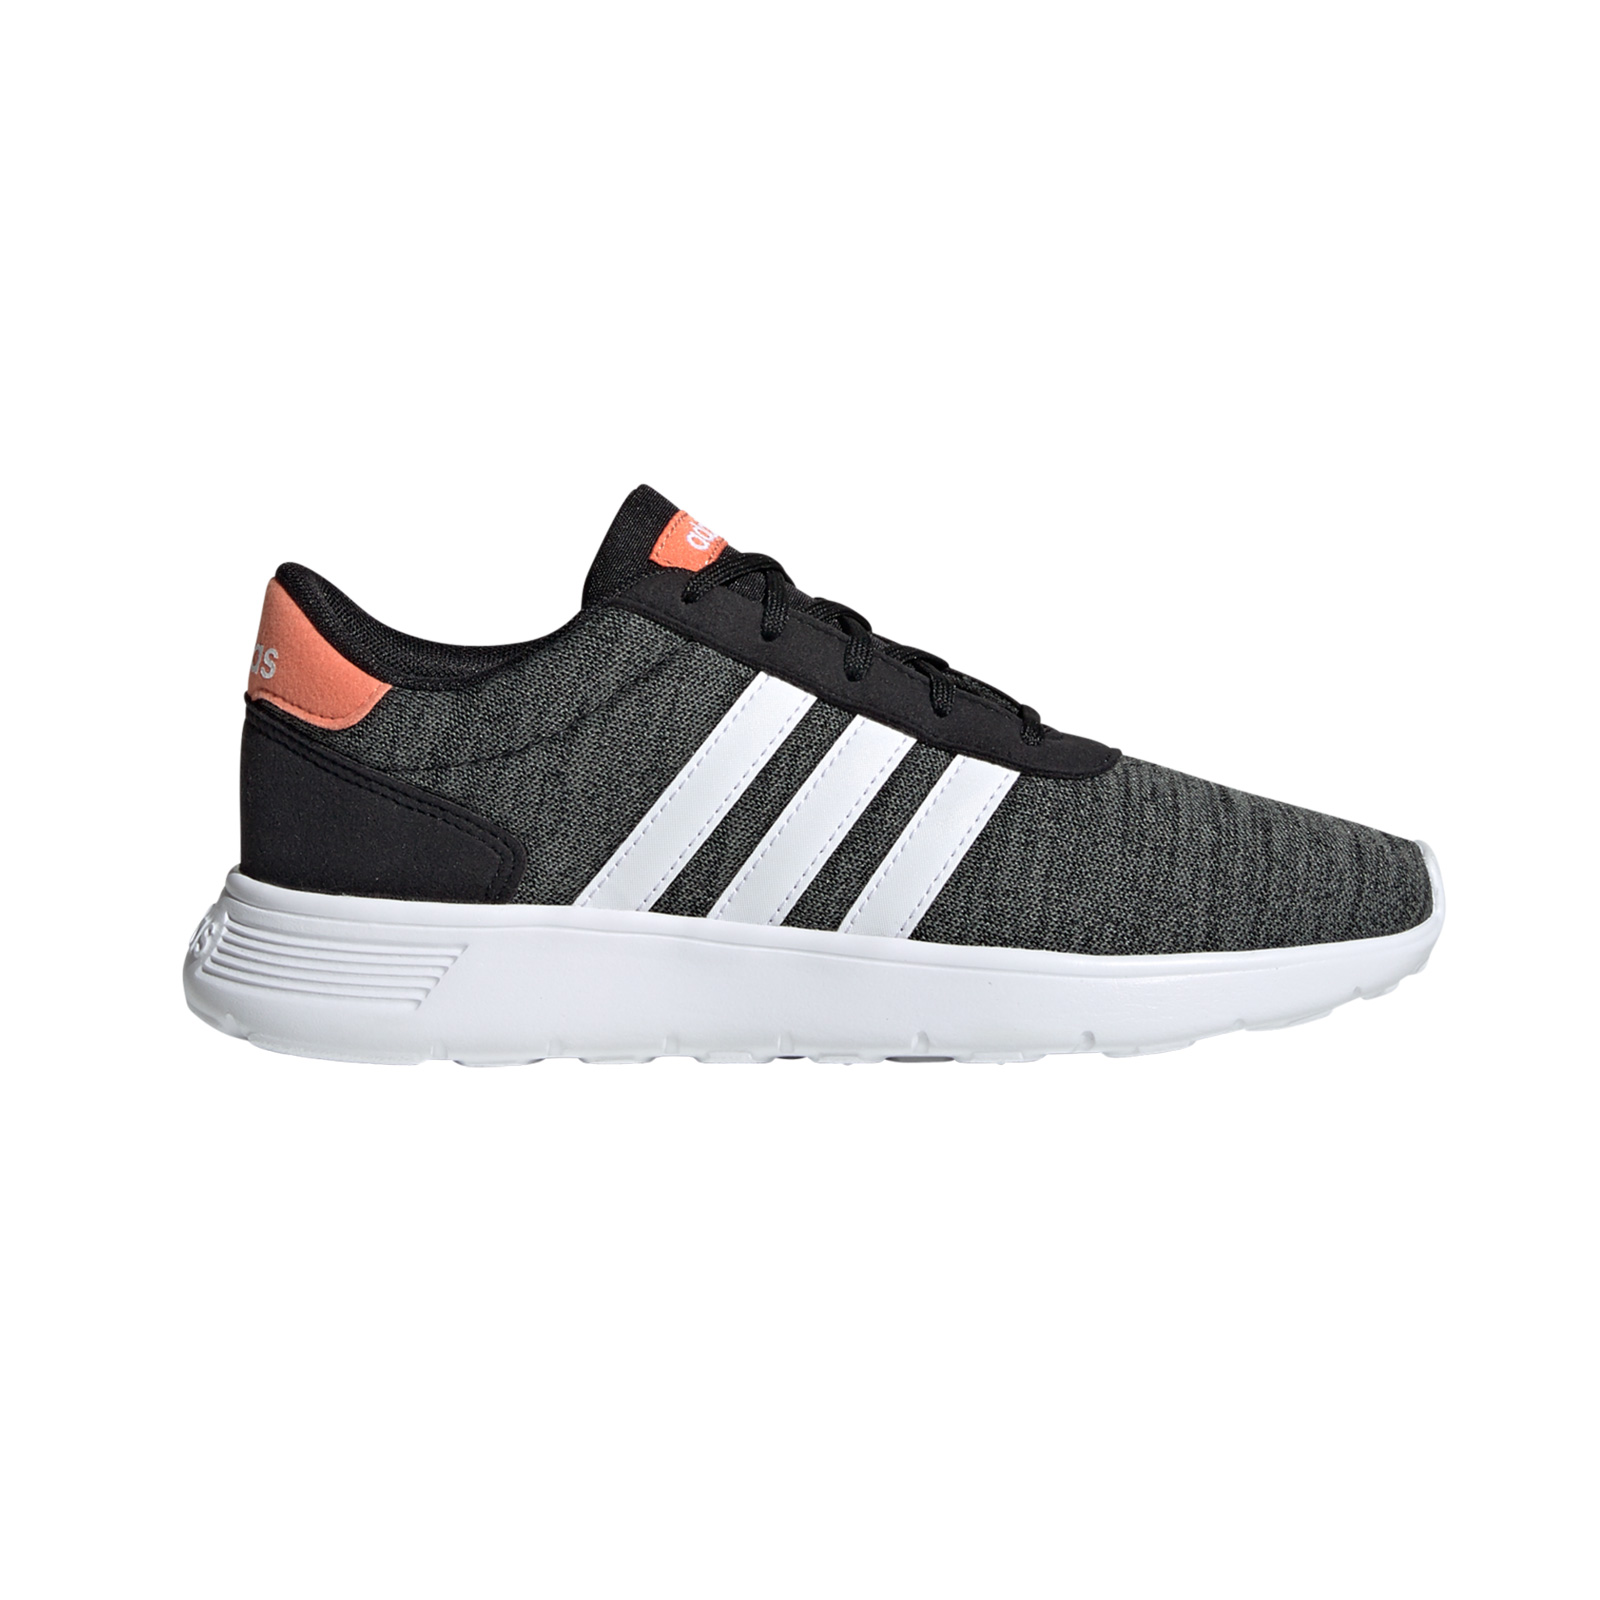 retail prices available new styles Παπούτσια για παιδιά νούμερο 38 2 - Starkids Shoes